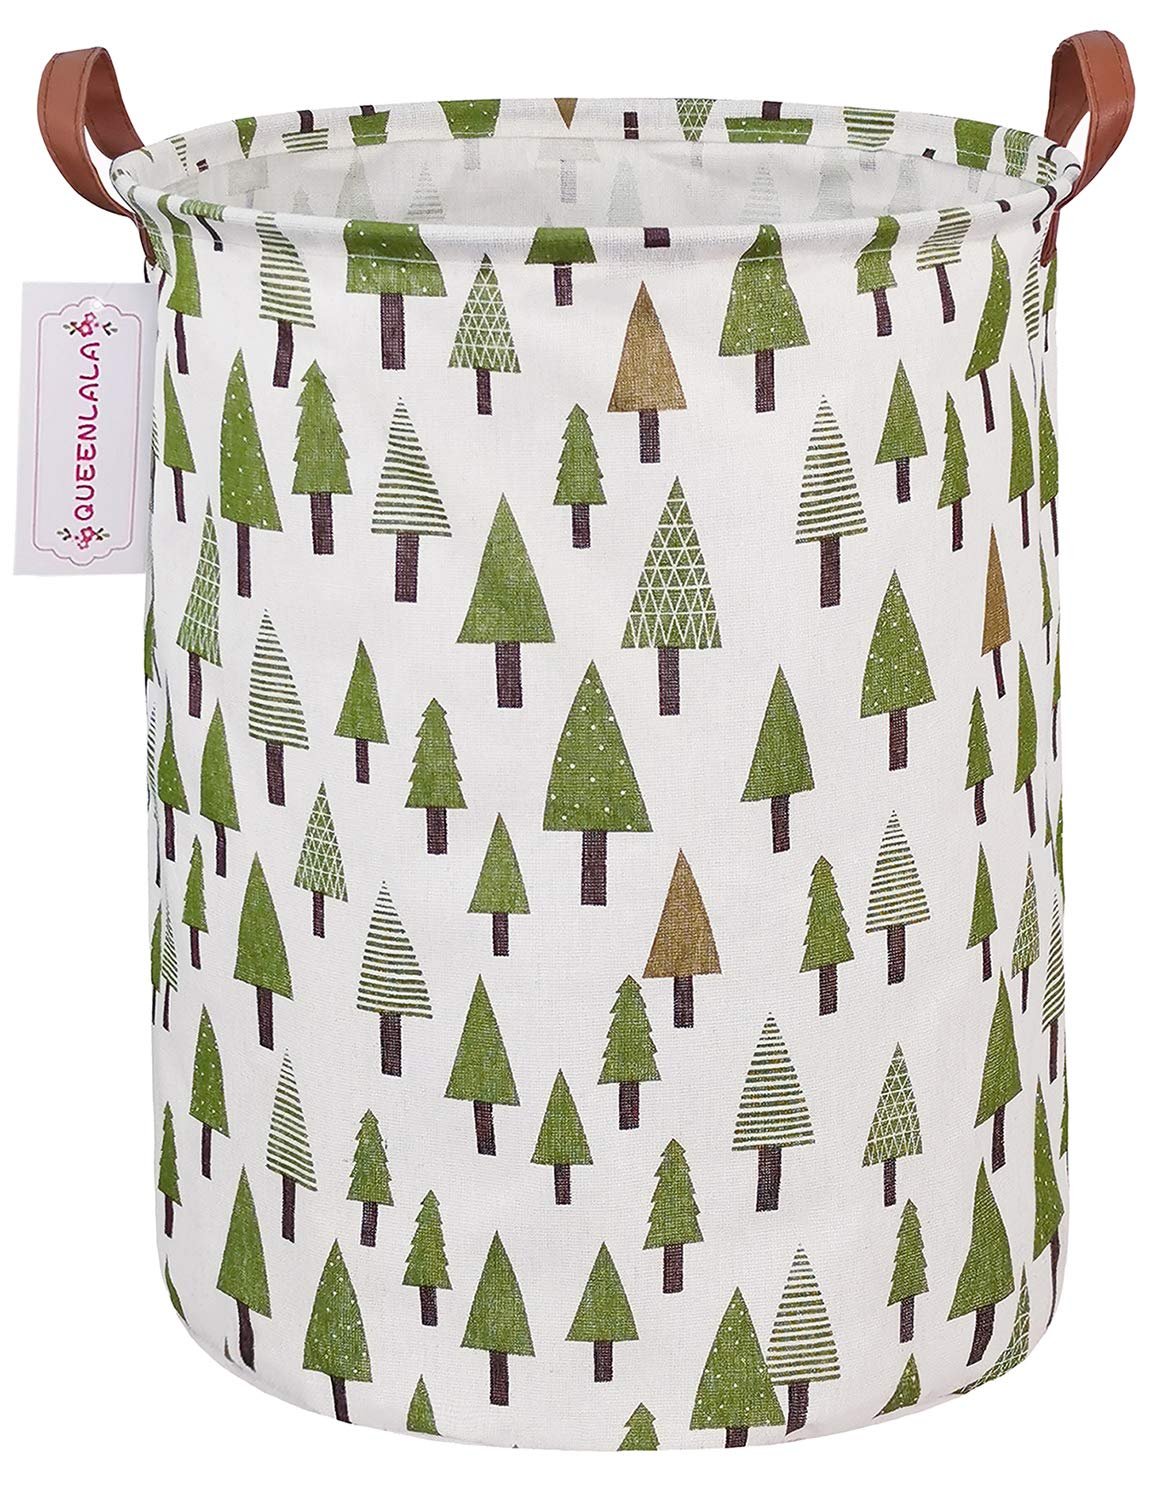 QUEENLALA Large Storage Basket,Laundry Hamper/Bathroom/Home Decor/Collapsible Round Storage Bin,Boys and Girls Hamper/Boxes/Clothing (Green Forest)